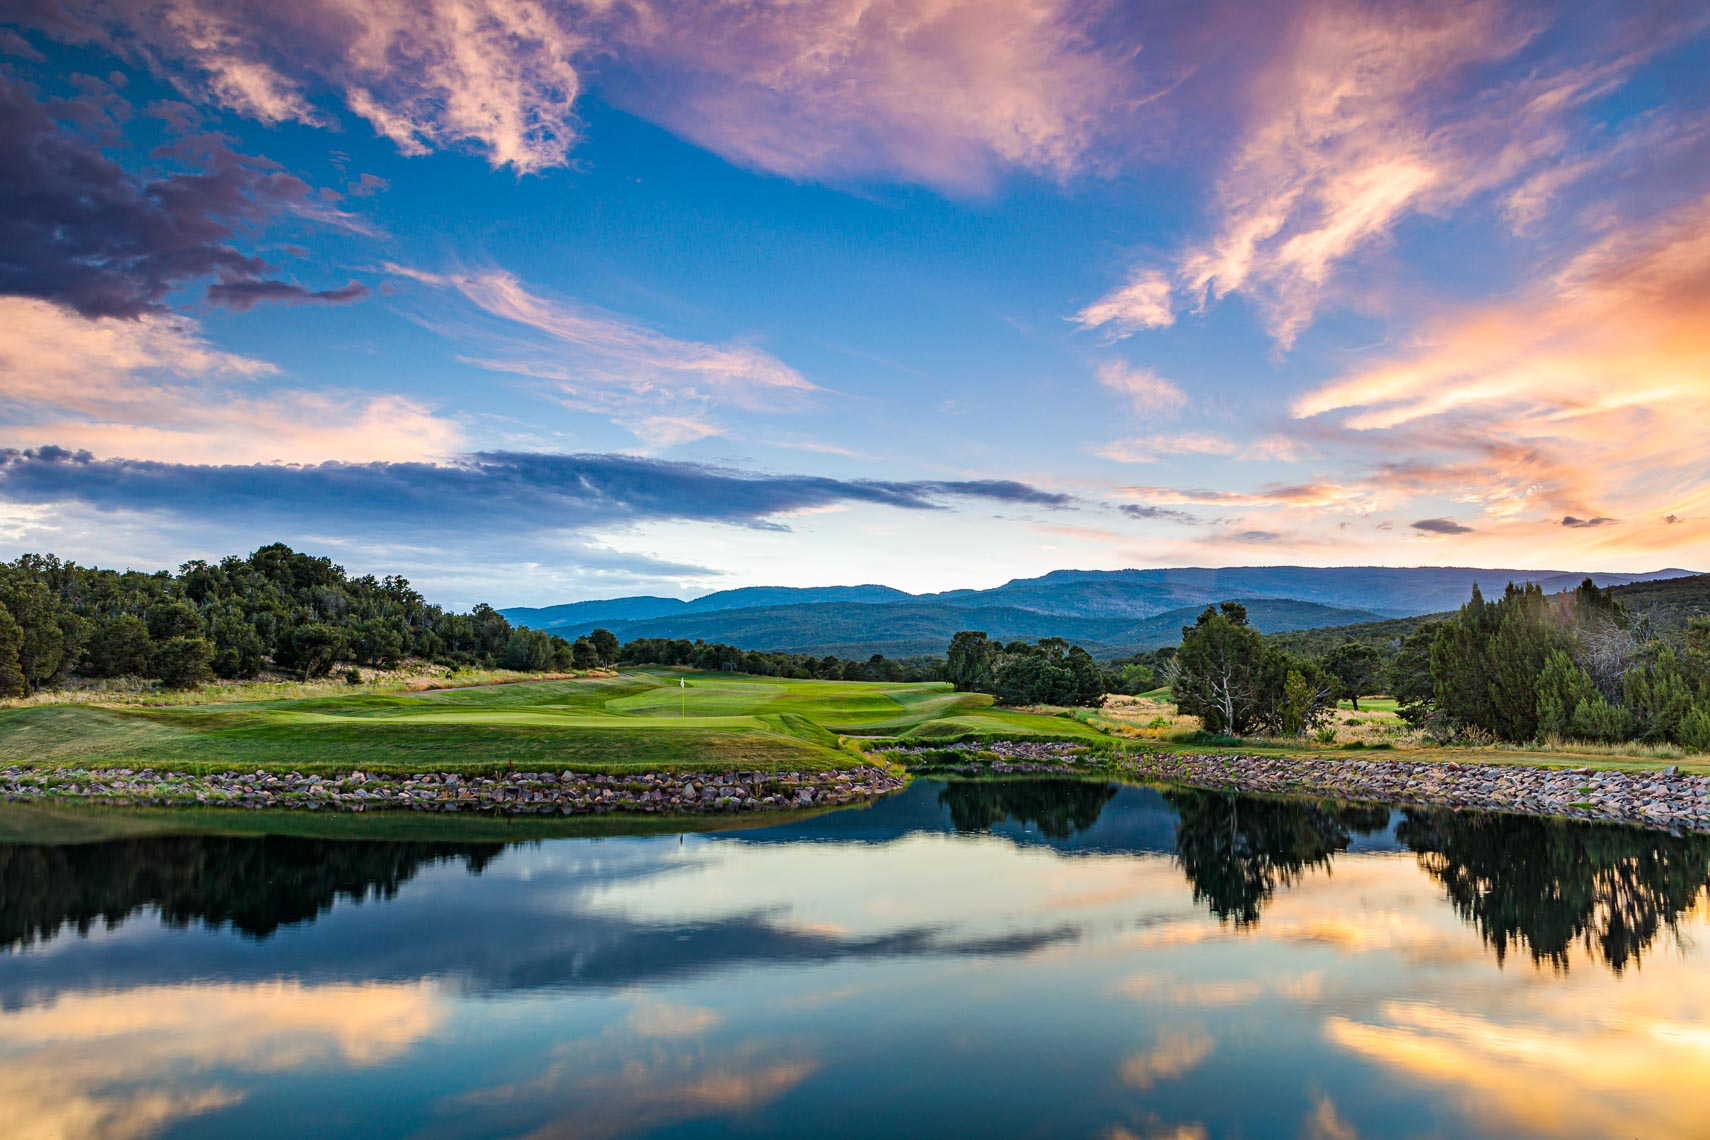 New Mexico Golf Course Landscape Sunrise | Michael DeYoung